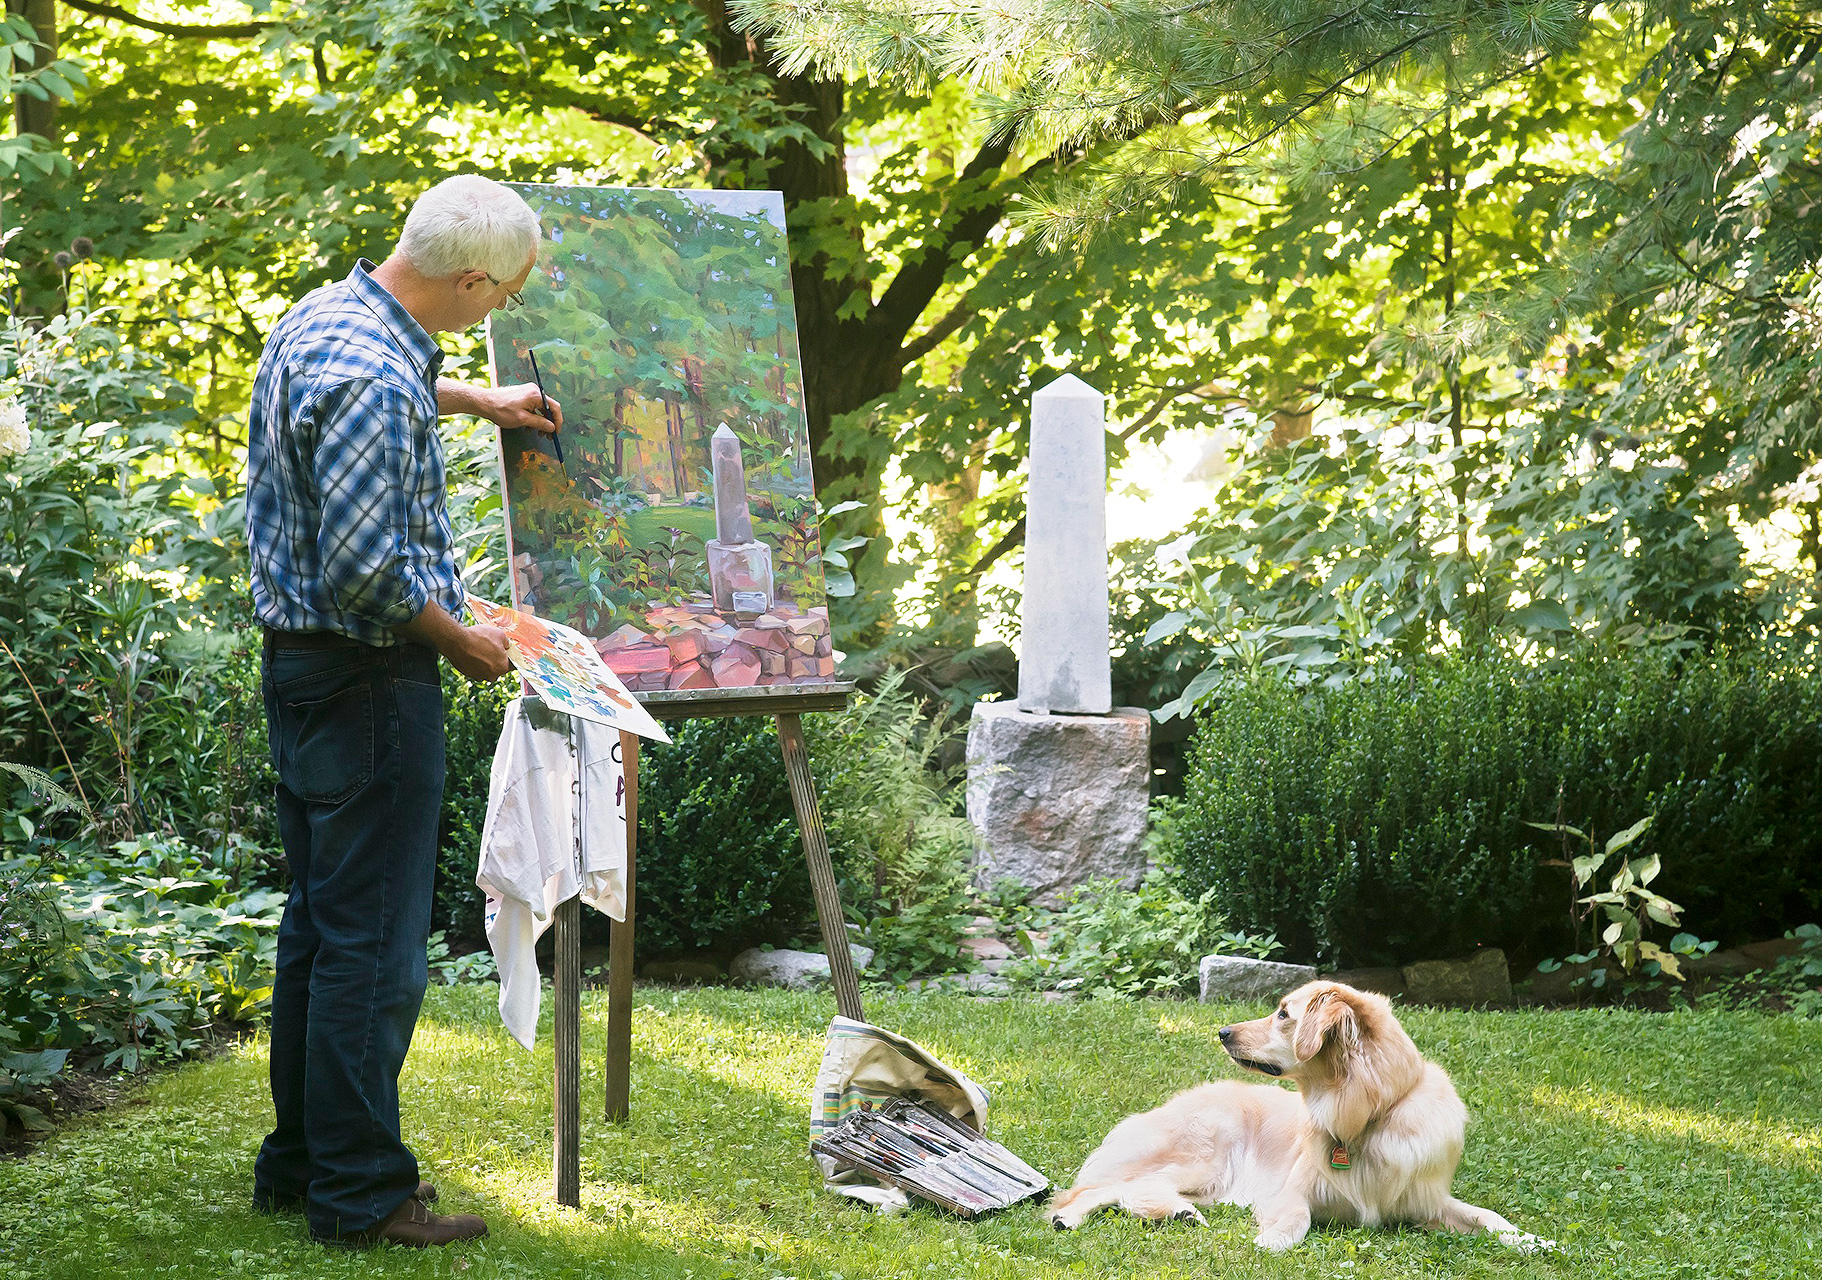 man painting nearby obelisk structure on canvas